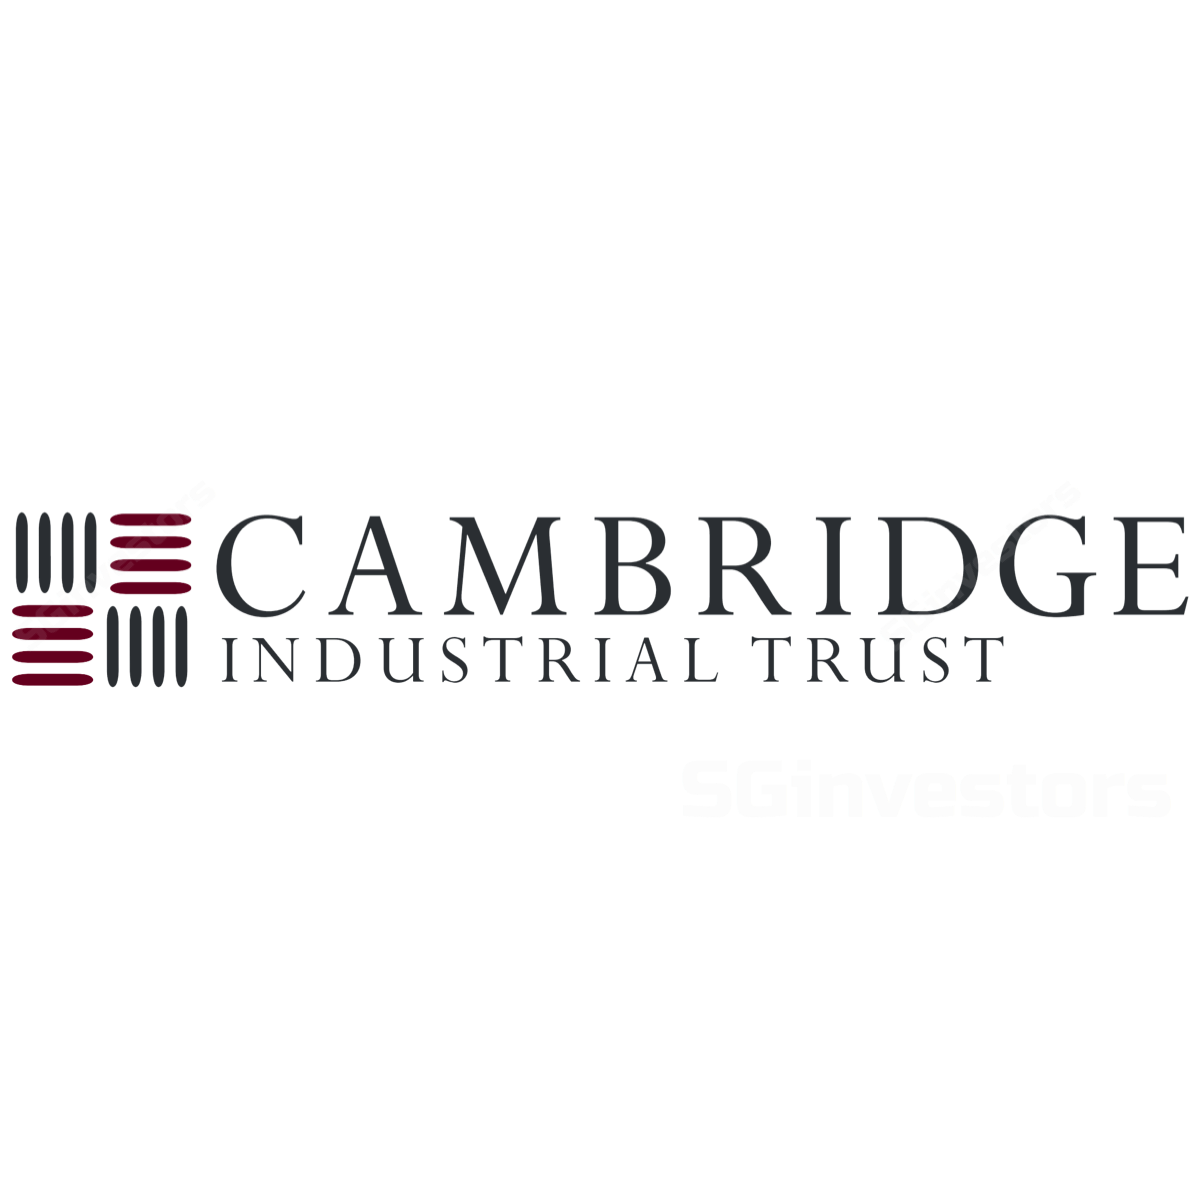 Cambridge Industrial Trust (CREIT SP) - DBS Vickers 2017-01-19: e-Shang Redwood to acquire 80% indirect interest in the Manager